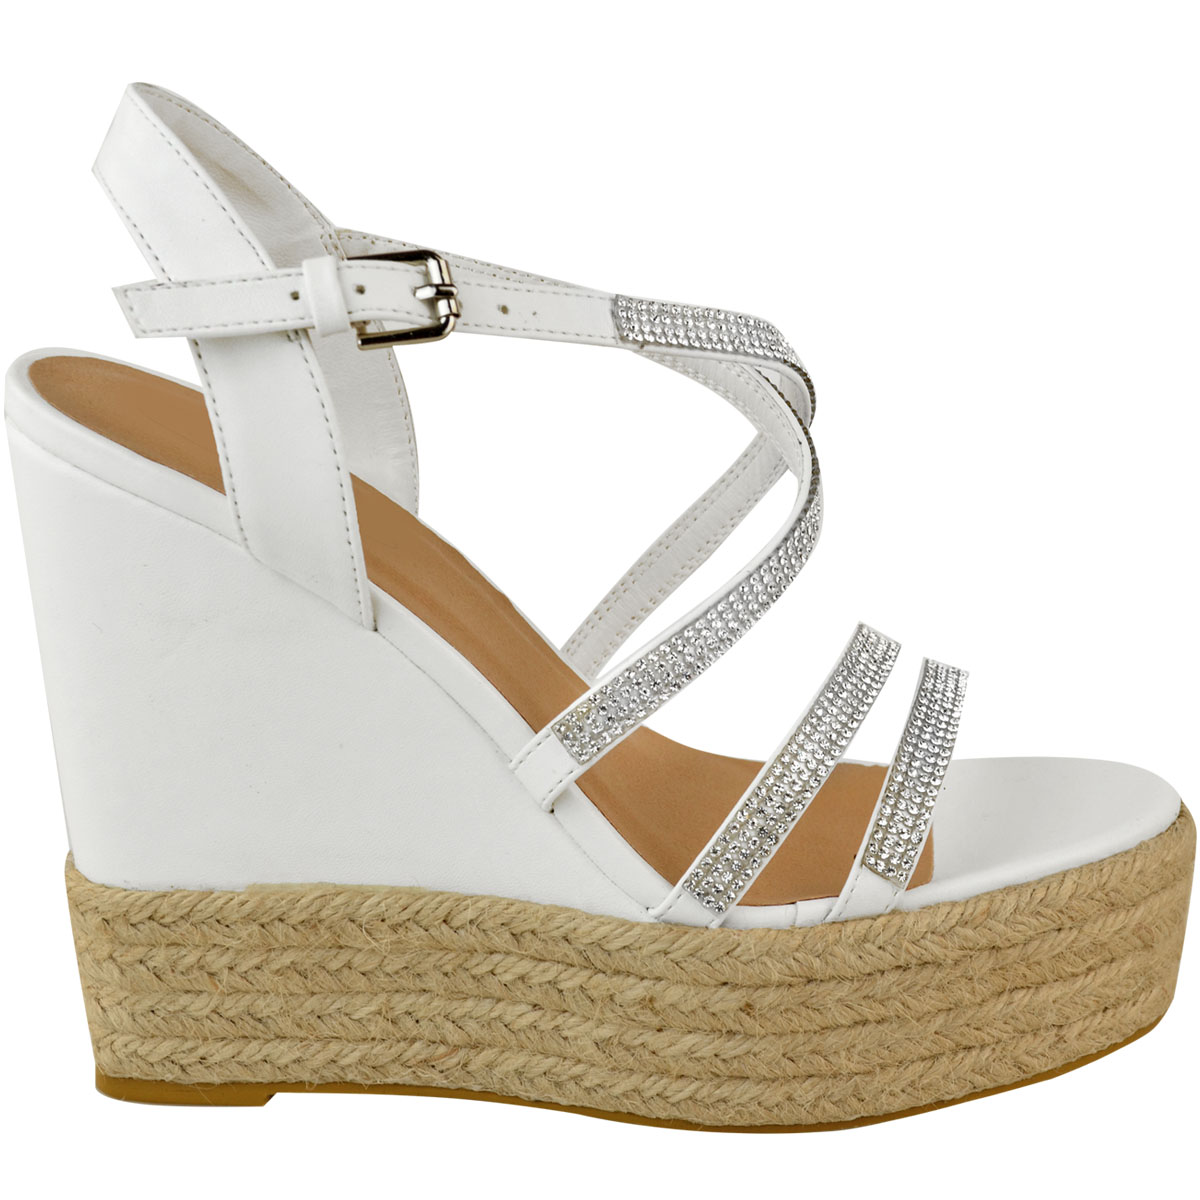 Womens-Ladies-Strappy-Diamante-Wedge-High-Heels-Sandals-Platforms-Shoes-Size-UK thumbnail 9